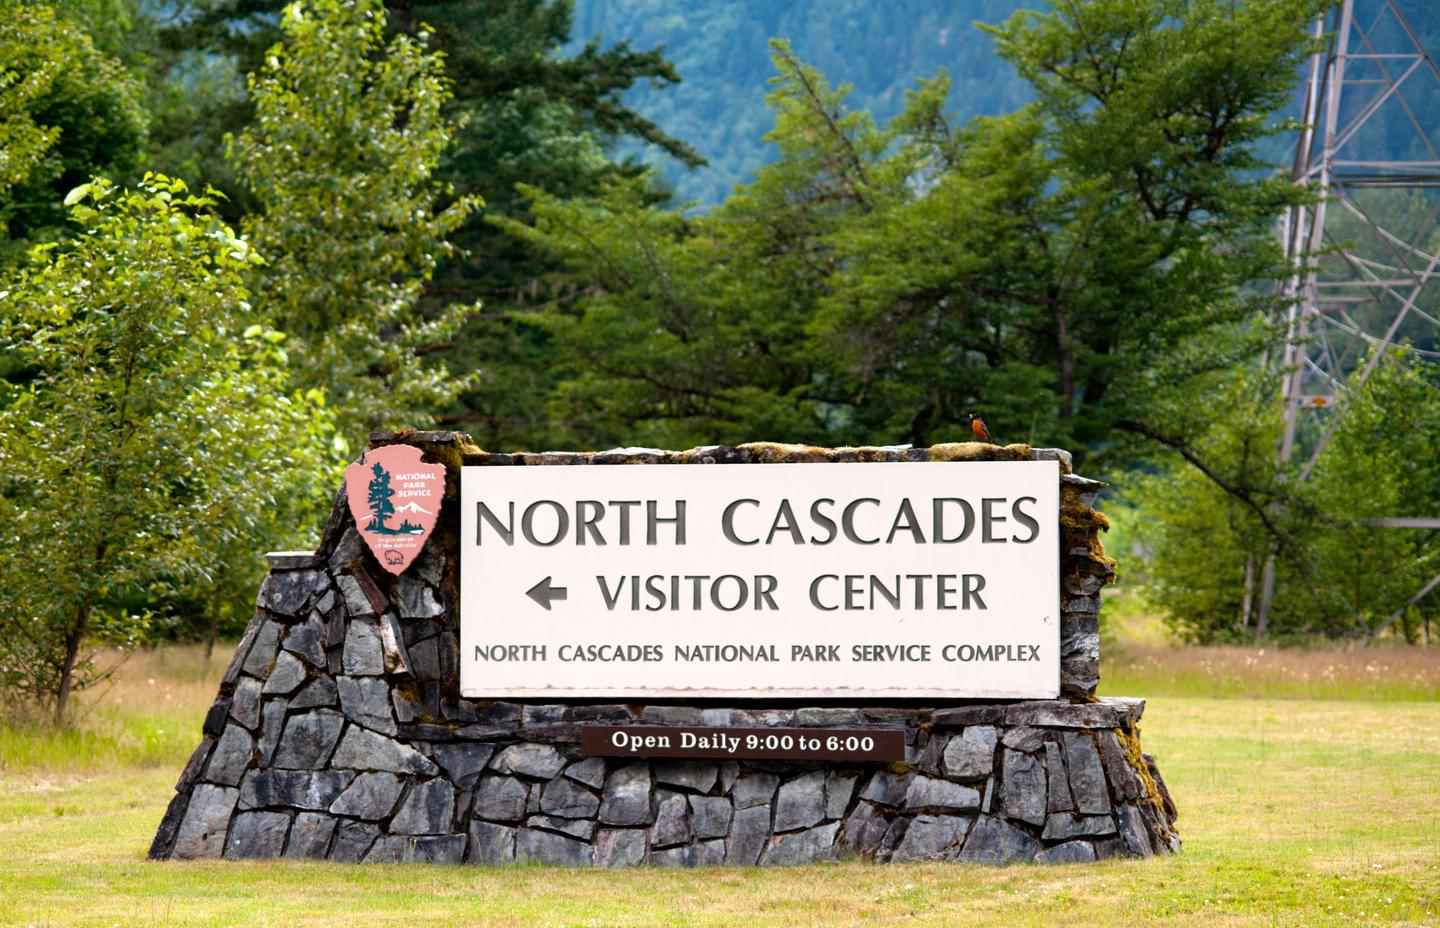 NCVCVisit the North Cascades Visitor Center to learn about the park complex and plan your visit.